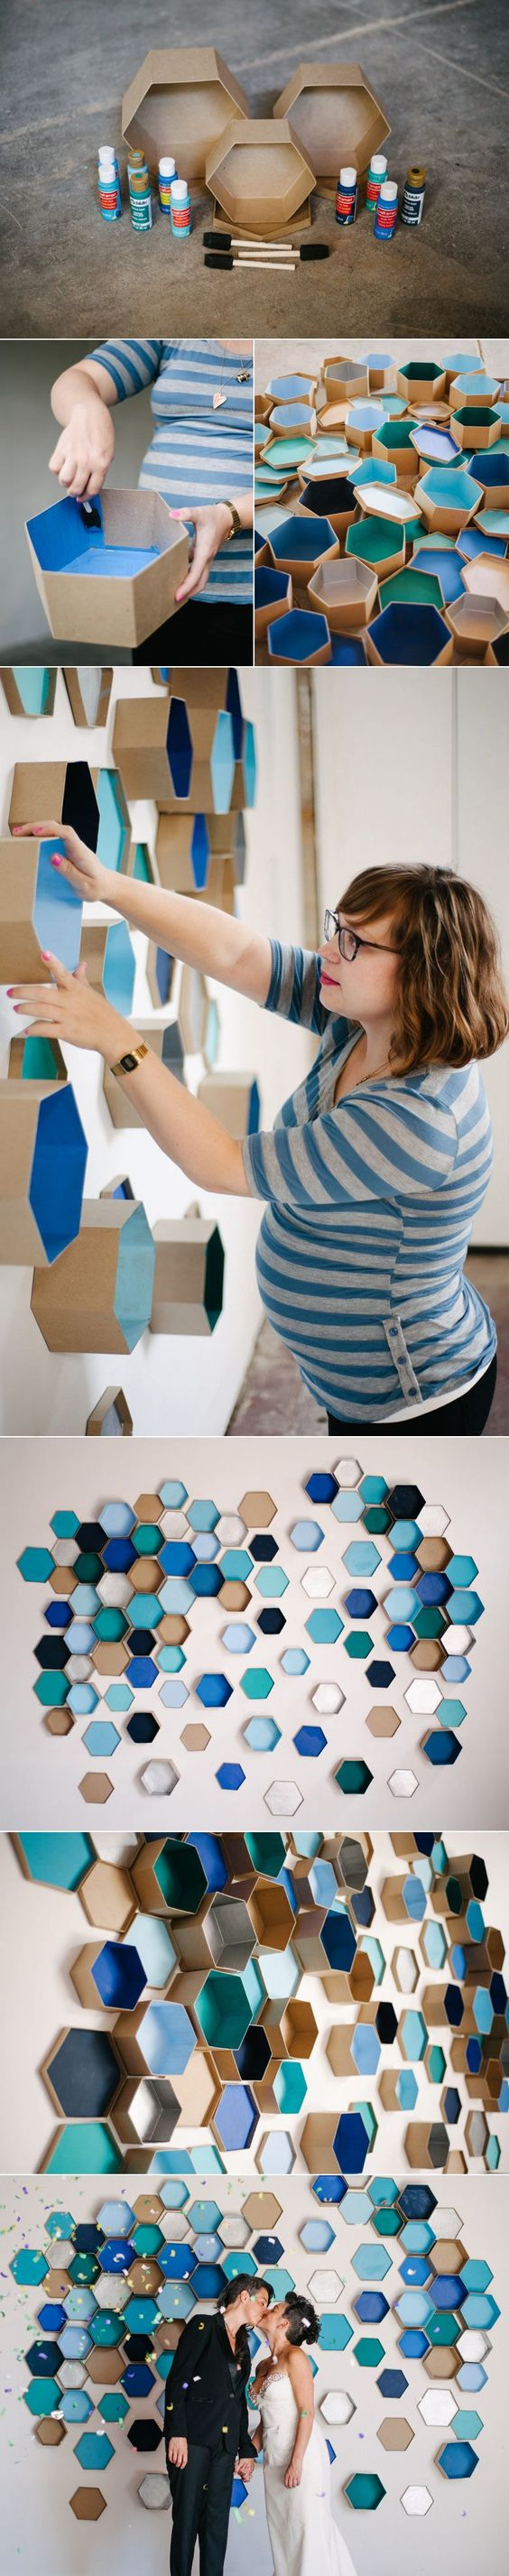 wall-decor-projects-12